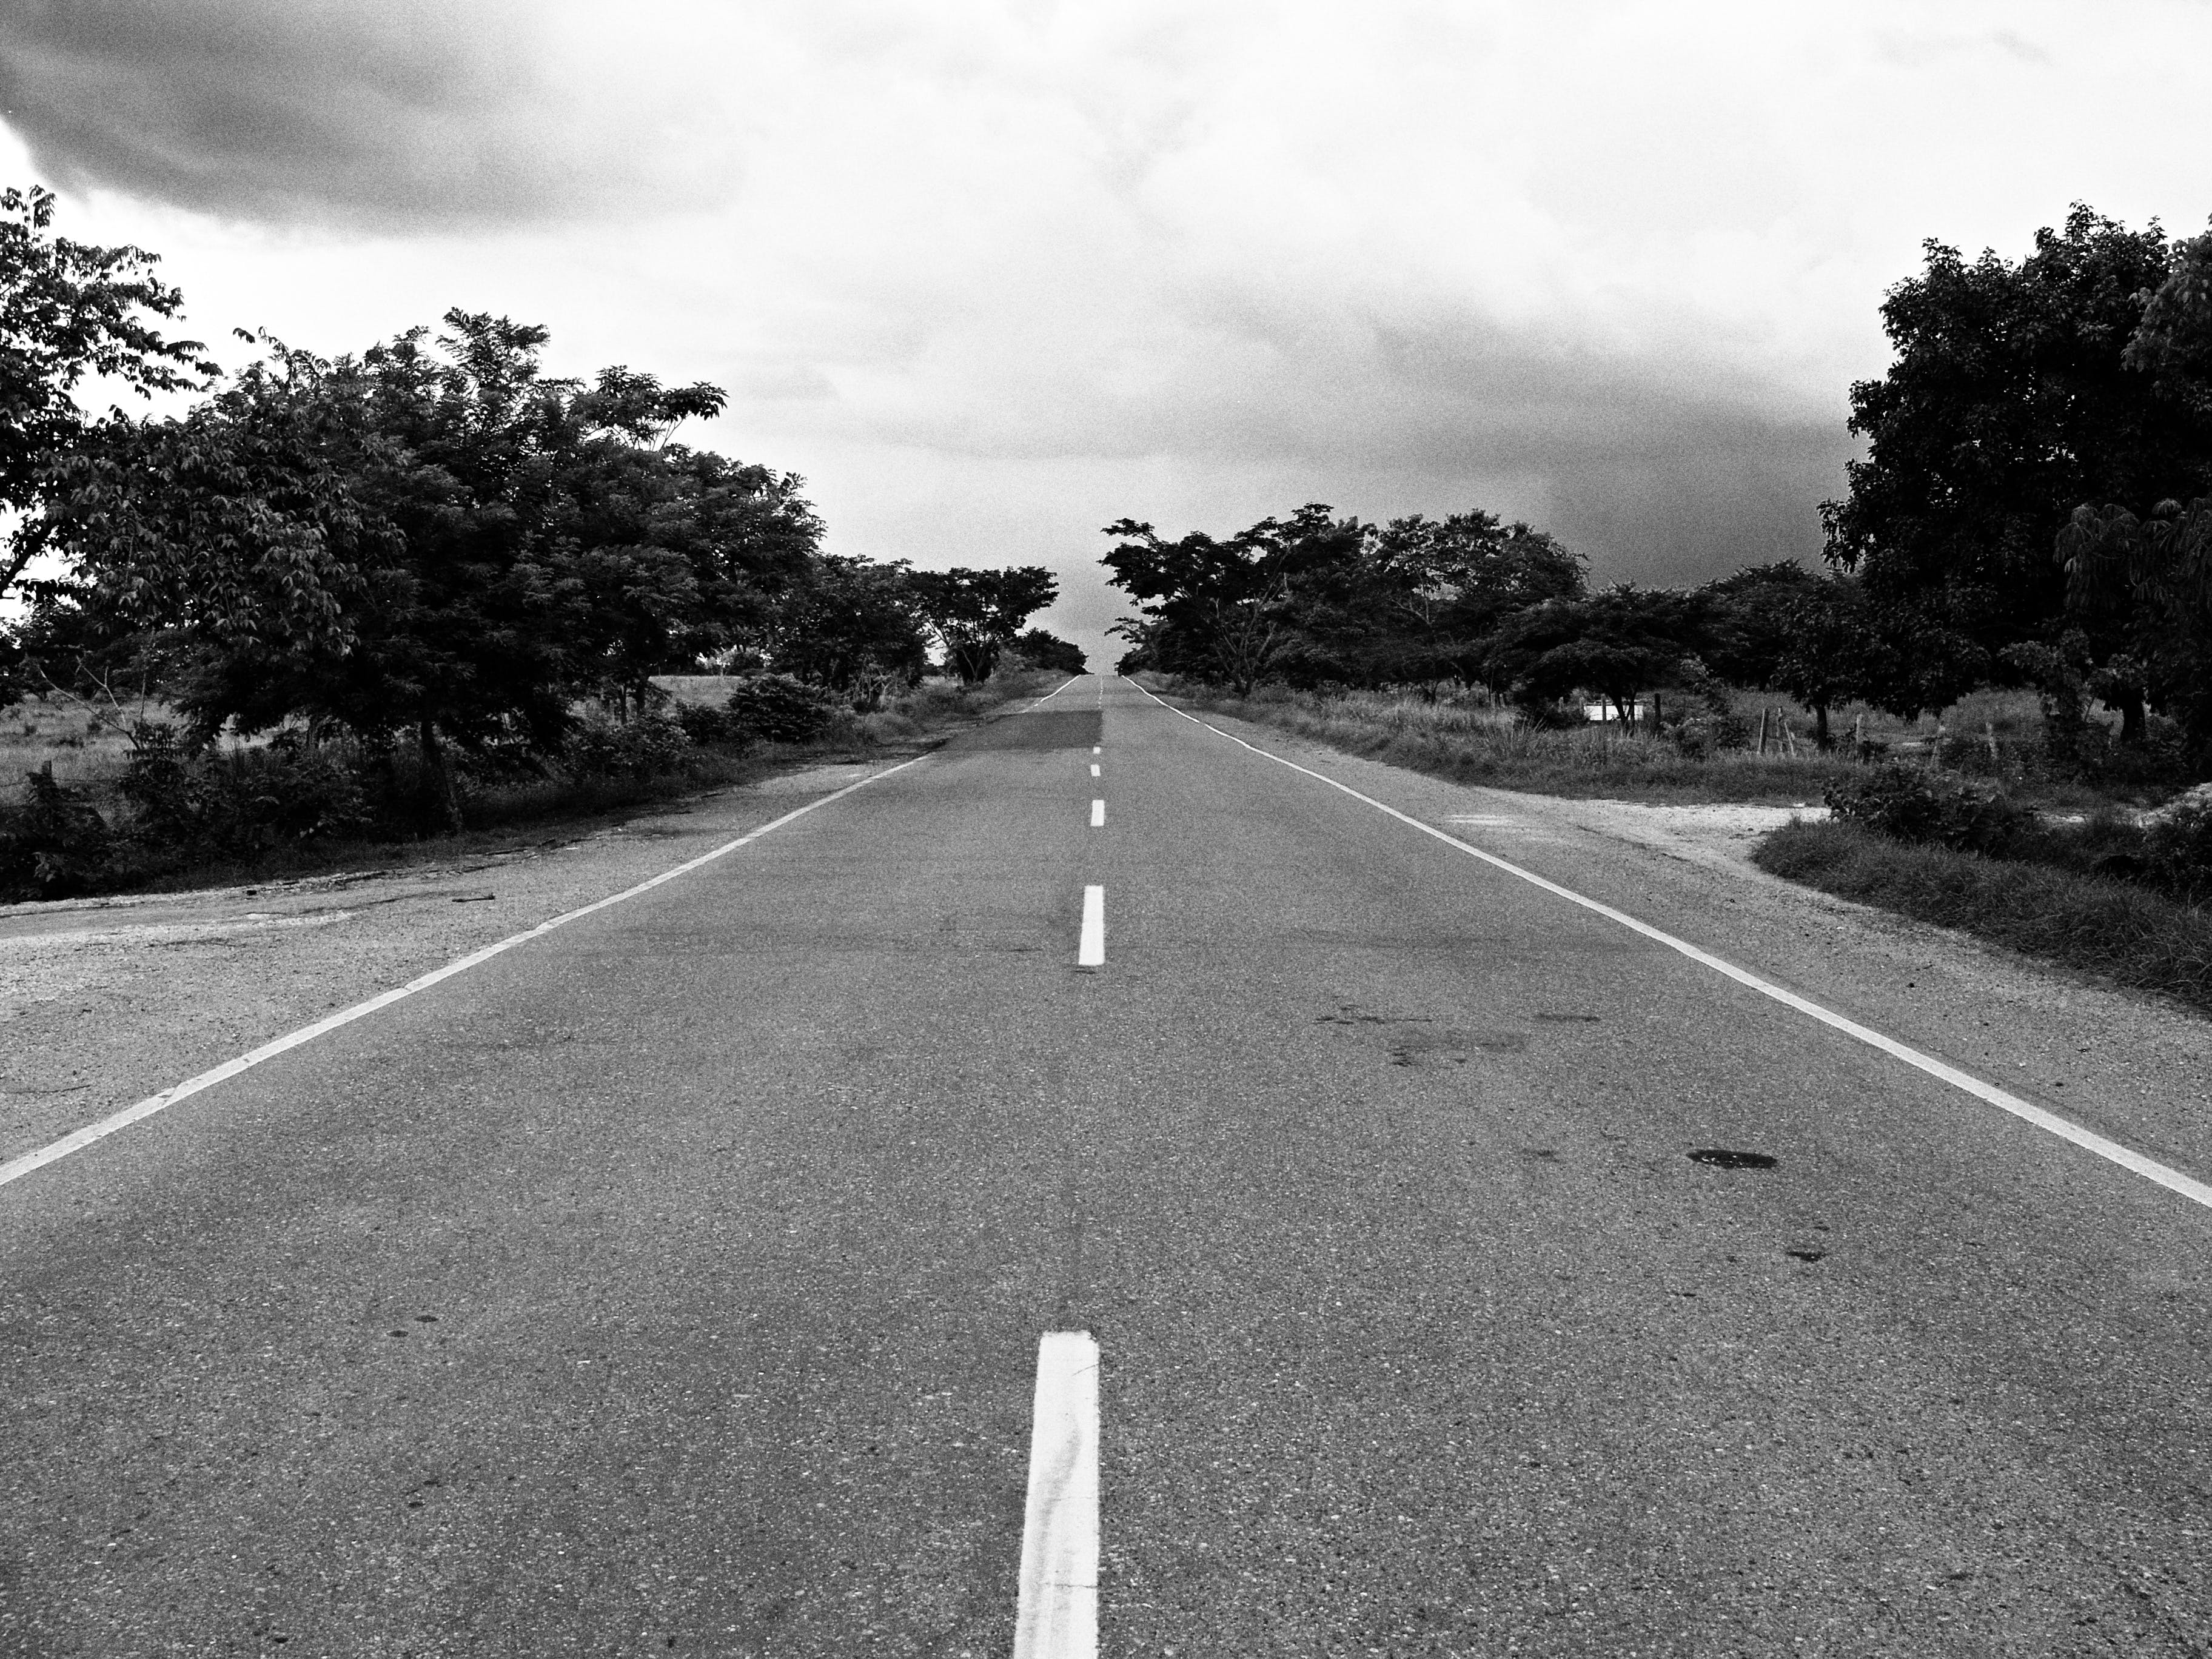 Grayscale Photography of Concrete Road during Daytime